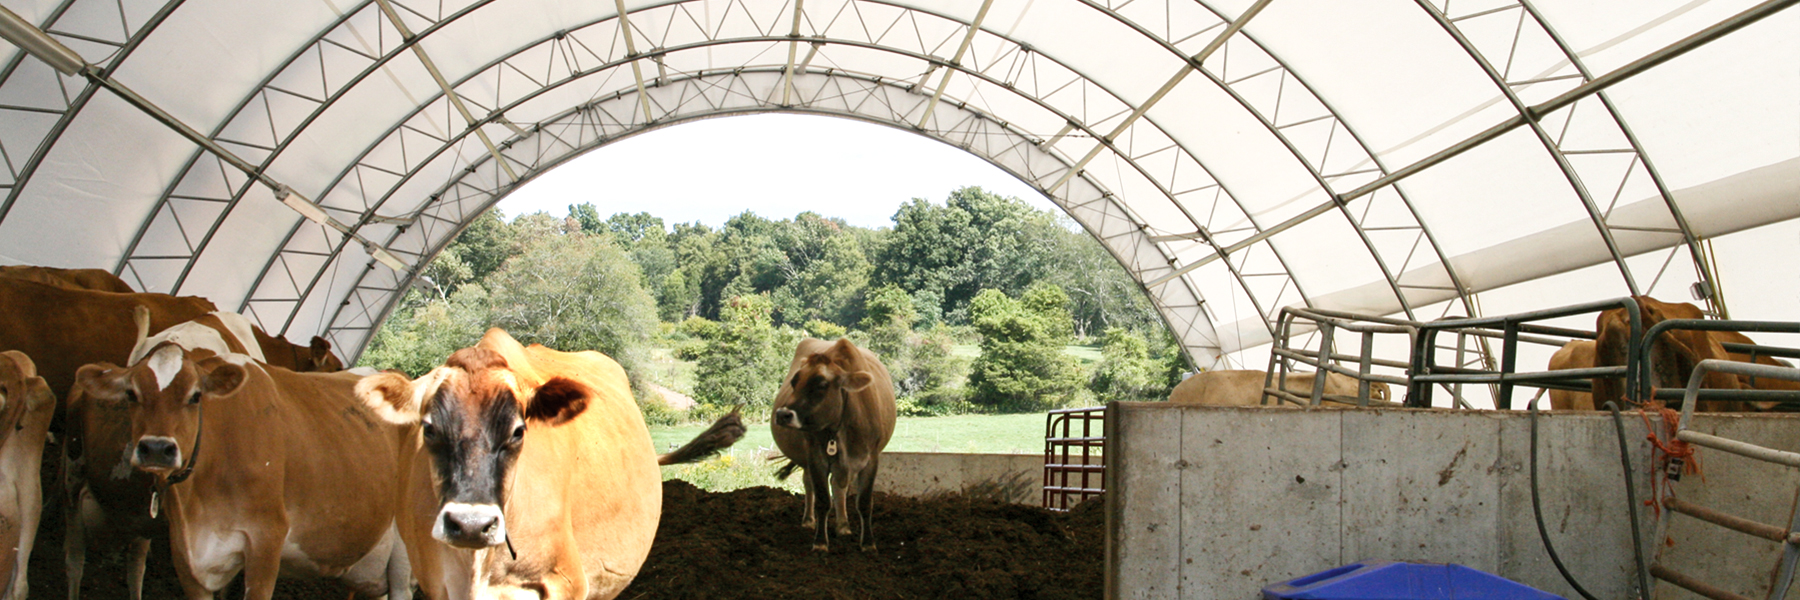 Cattle under a round HD Building in CT